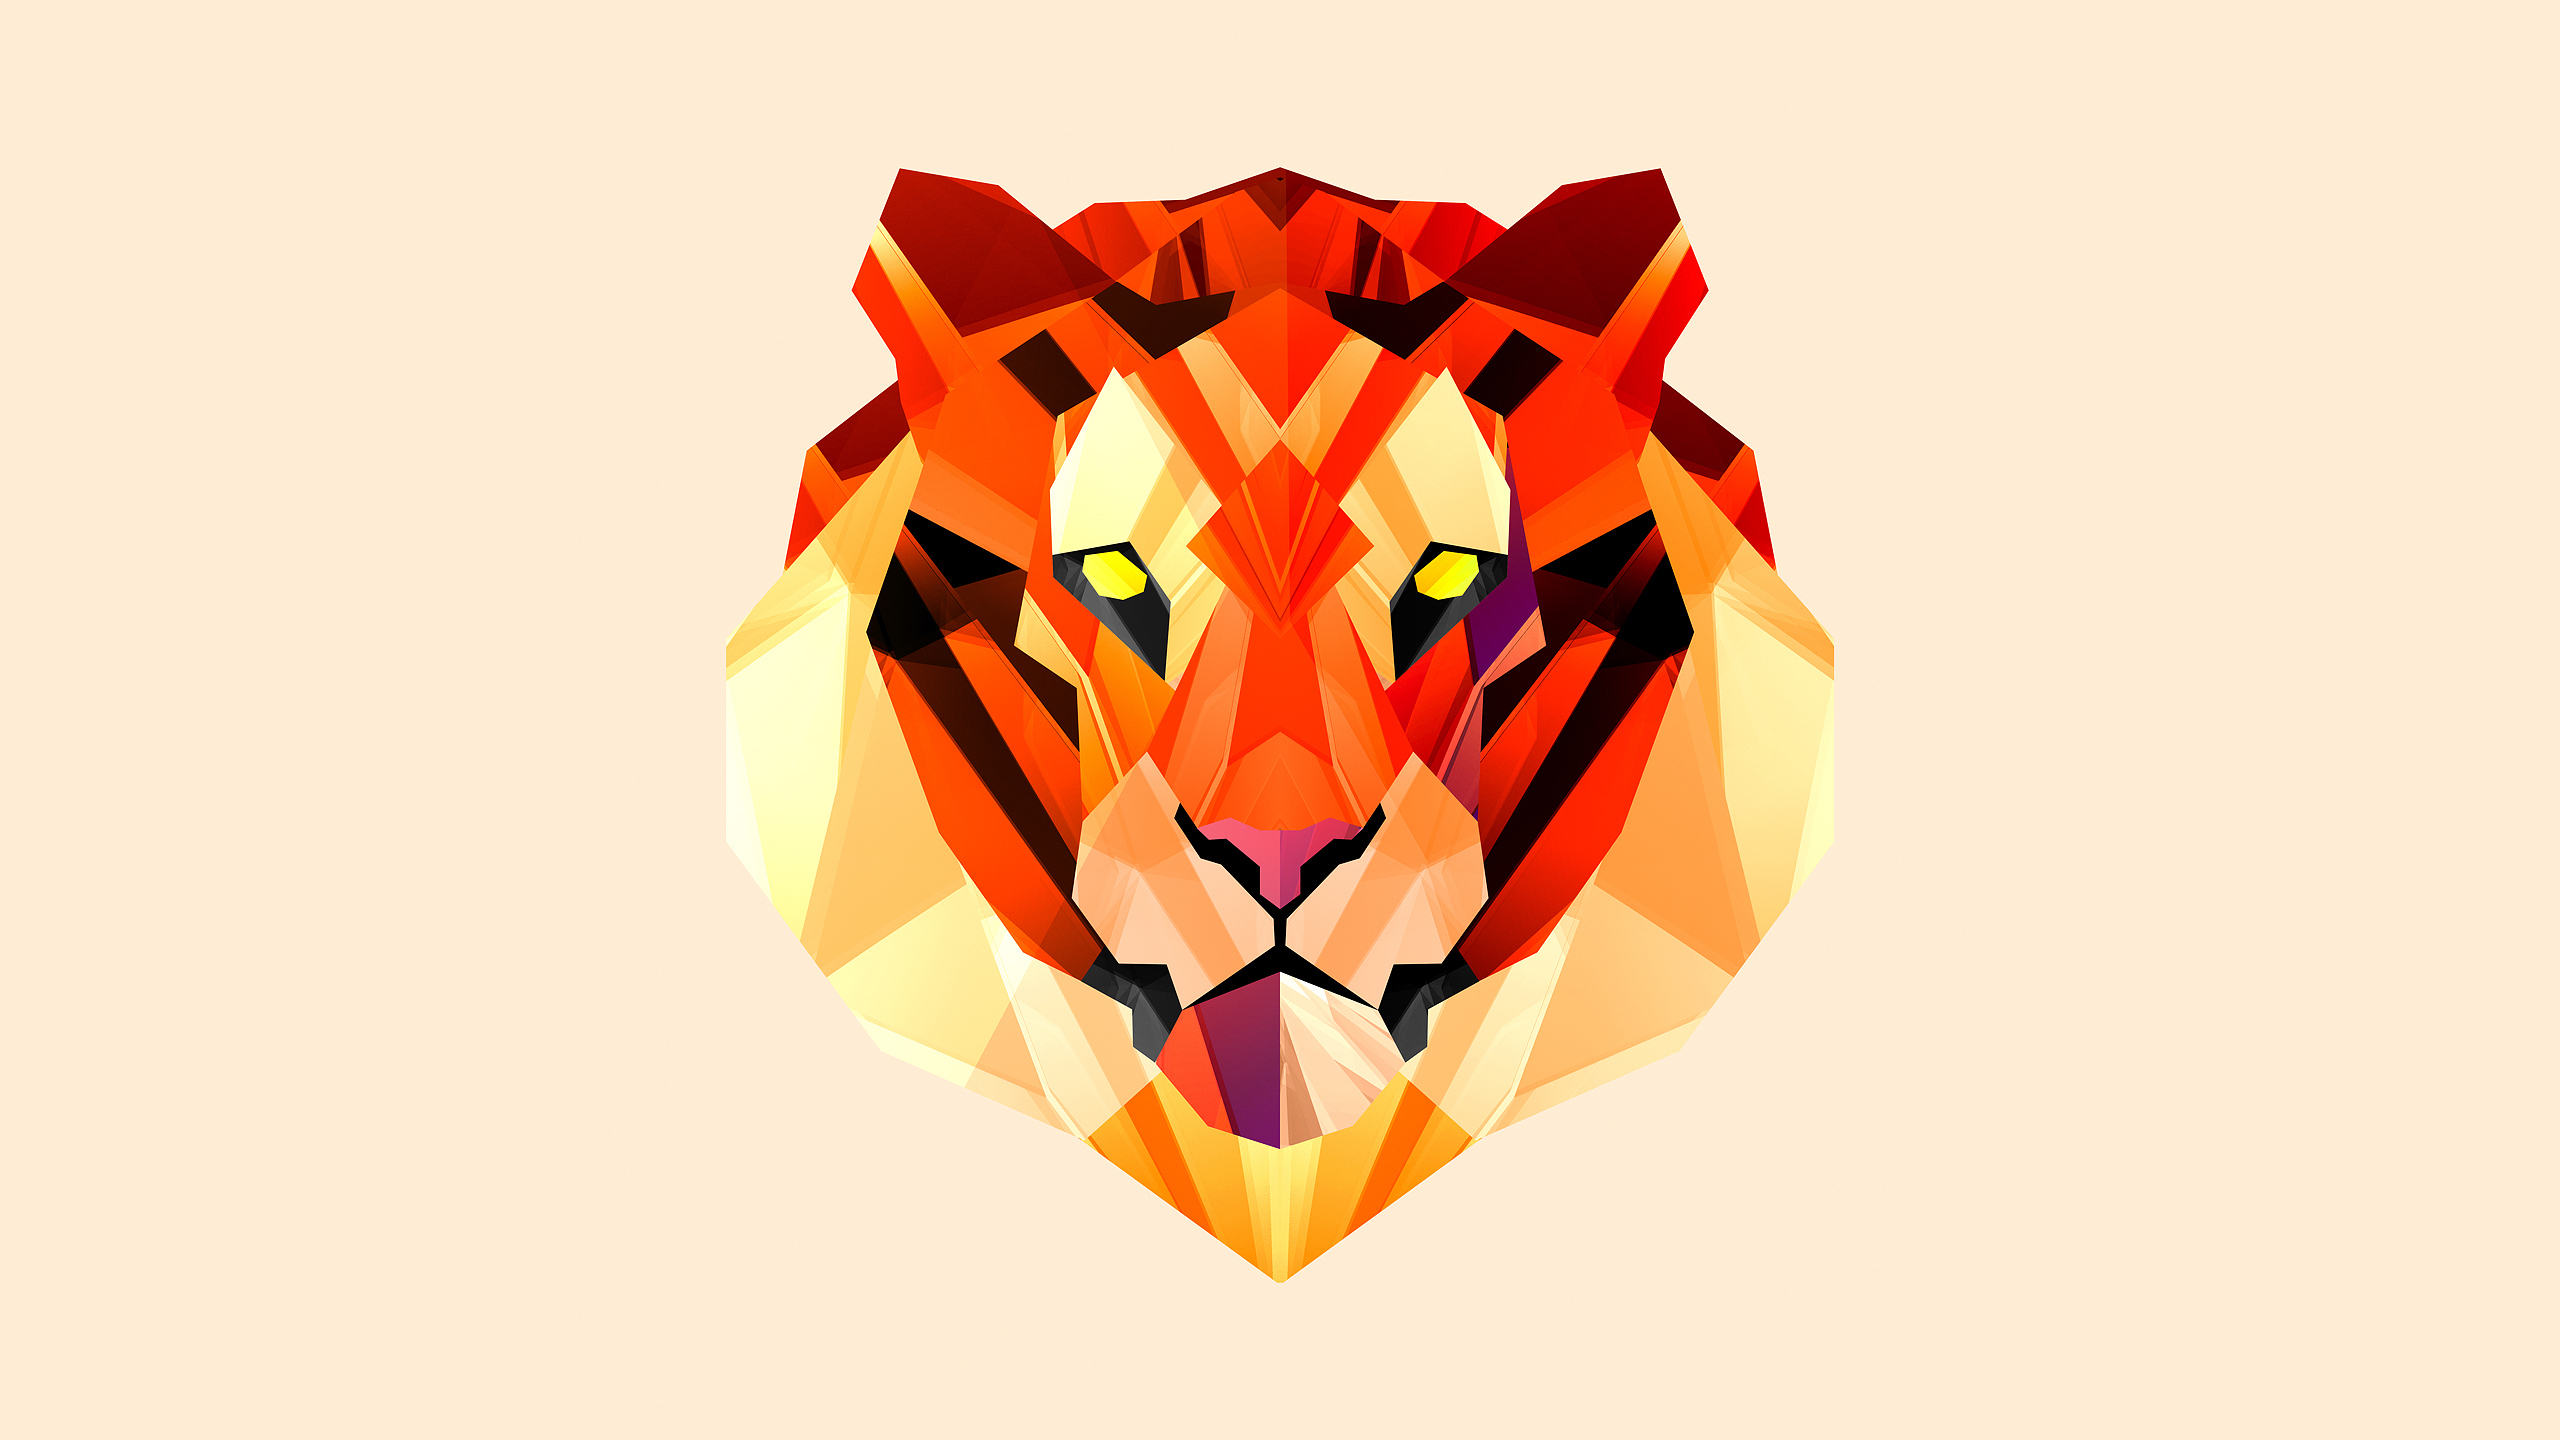 2560x1440 Pictures Tigers Justin Maller Vector Graphics 2560x1440